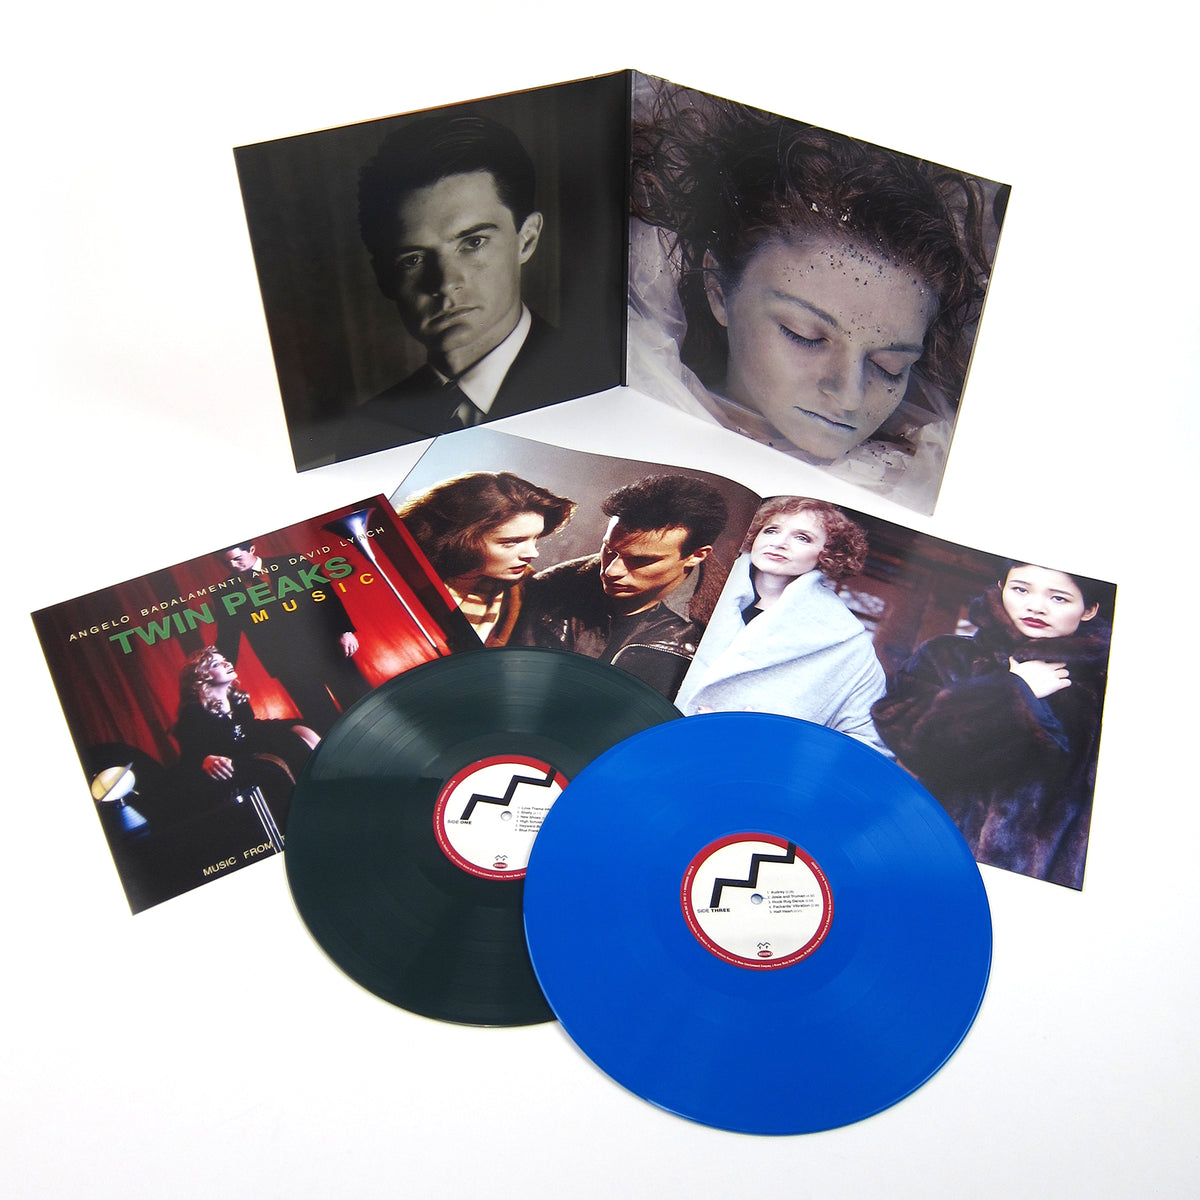 Angelo Badalamenti: Twin Peaks Season Two Music And More (Colored Vinyl) Vinyl 2LP (Record Store Day)